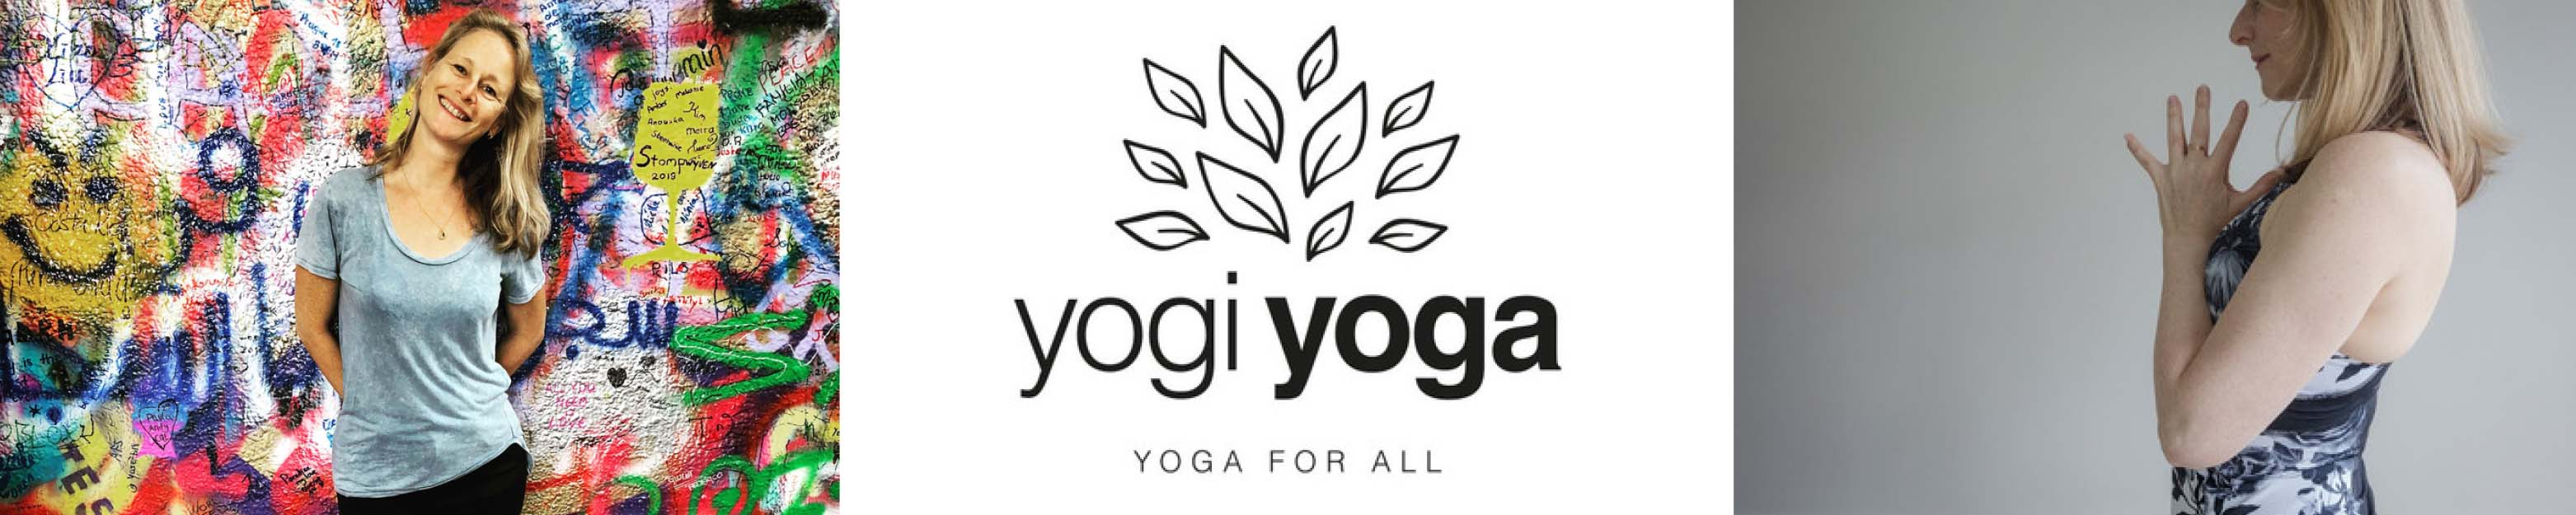 yogiyoga mentoring and personal development